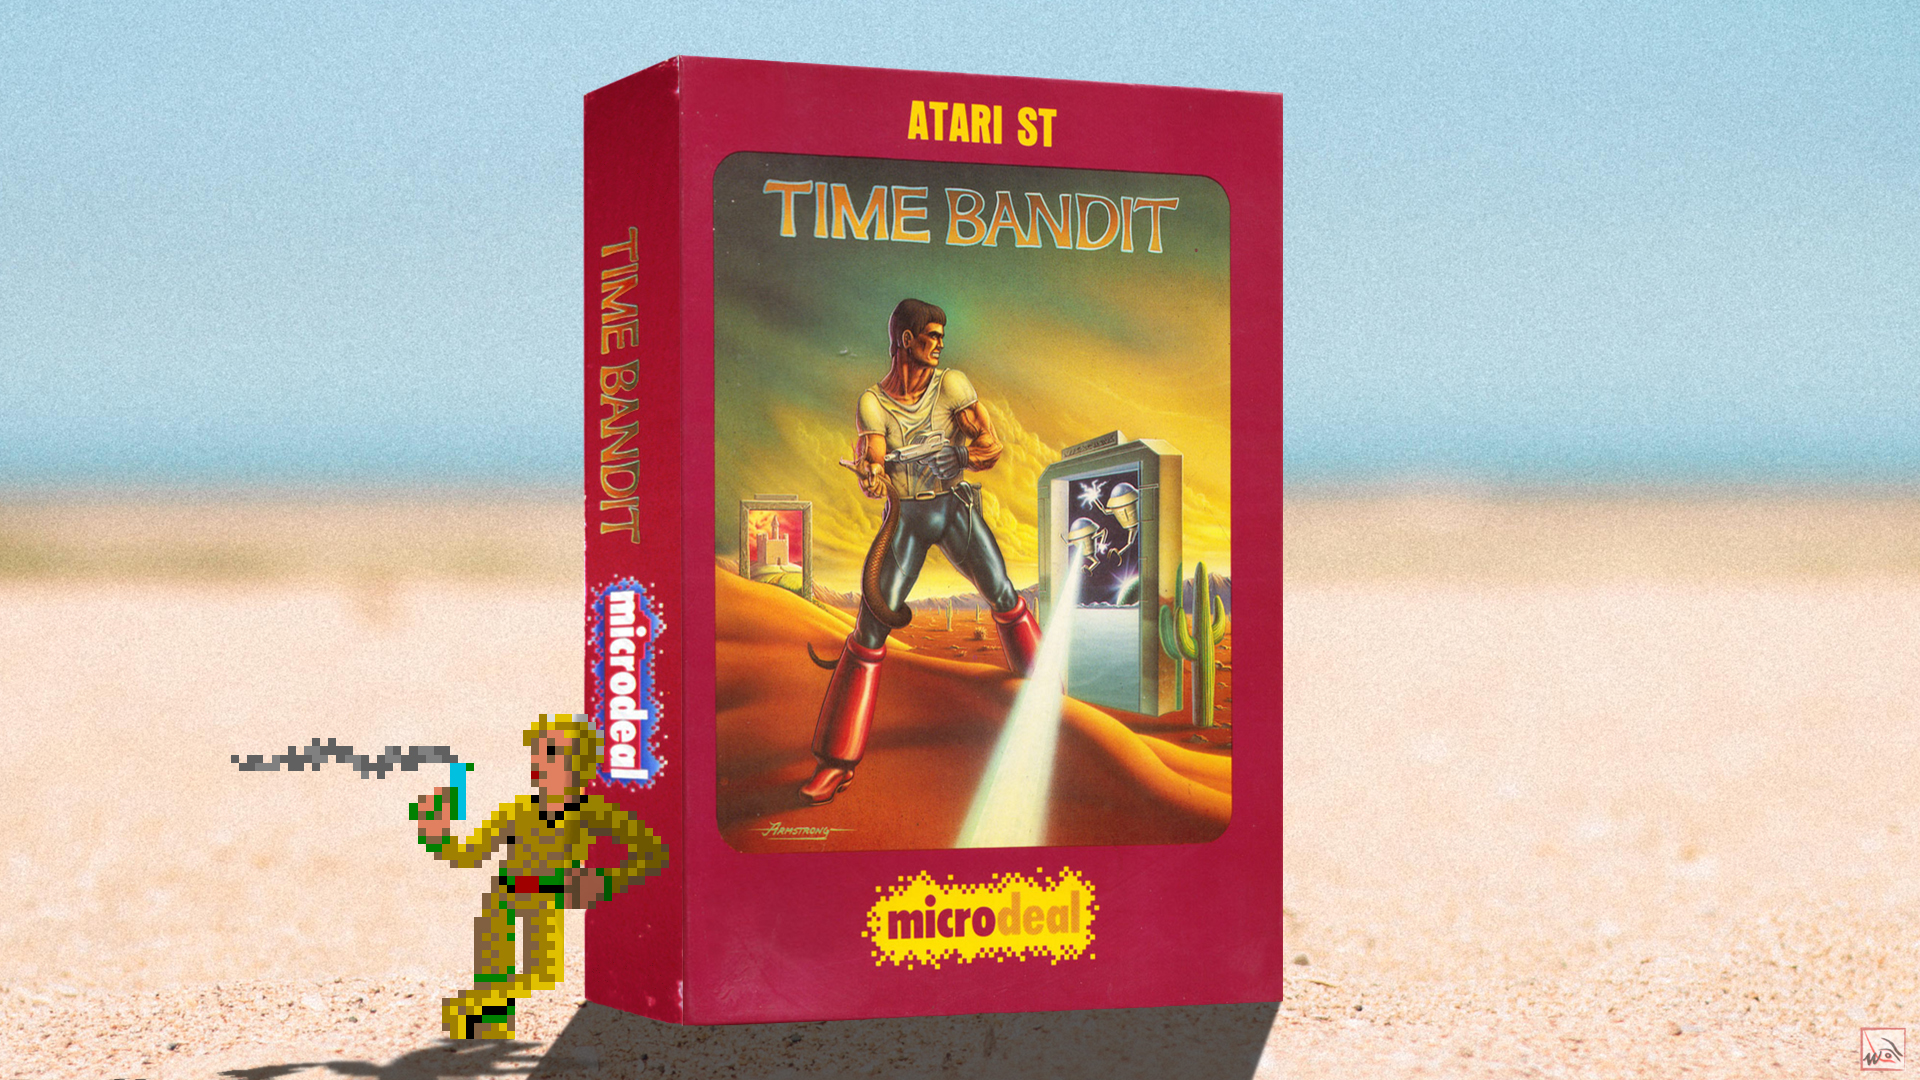 """""""Time bandit"""" from Microdeal"""